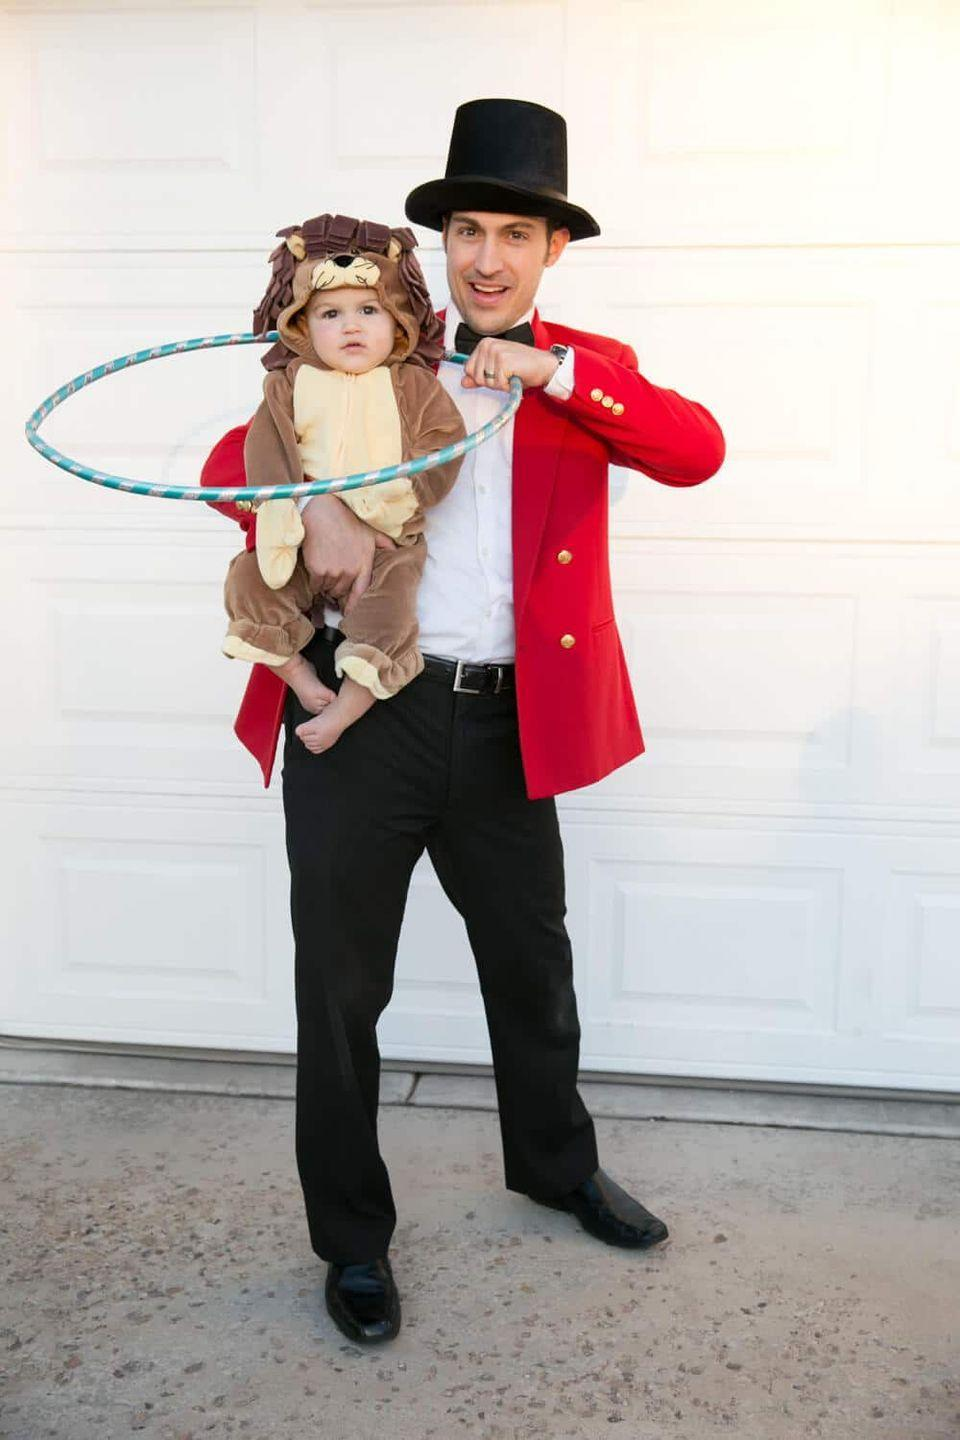 """<p>If you have a hula hoop at home, you're already one step closer to finishing this simple DIY costume. Check your local thrift store for a cheap red jacket or blazer. </p><p><strong>See more at <a href=""""https://sofestive.com/2018/10/17/family-halloween-costume-ideas/"""" rel=""""nofollow noopener"""" target=""""_blank"""" data-ylk=""""slk:So Festive!"""" class=""""link rapid-noclick-resp"""">So Festive!</a>.</strong></p><p><a class=""""link rapid-noclick-resp"""" href=""""https://www.amazon.com/Funny-Party-Hats-Black-Costume/dp/B07CJPYXV9/ref=pd_lpo_sbs_193_img_0?tag=syn-yahoo-20&ascsubtag=%5Bartid%7C10050.g.29402076%5Bsrc%7Cyahoo-us"""" rel=""""nofollow noopener"""" target=""""_blank"""" data-ylk=""""slk:SHOP TOP HATS"""">SHOP TOP HATS</a></p>"""